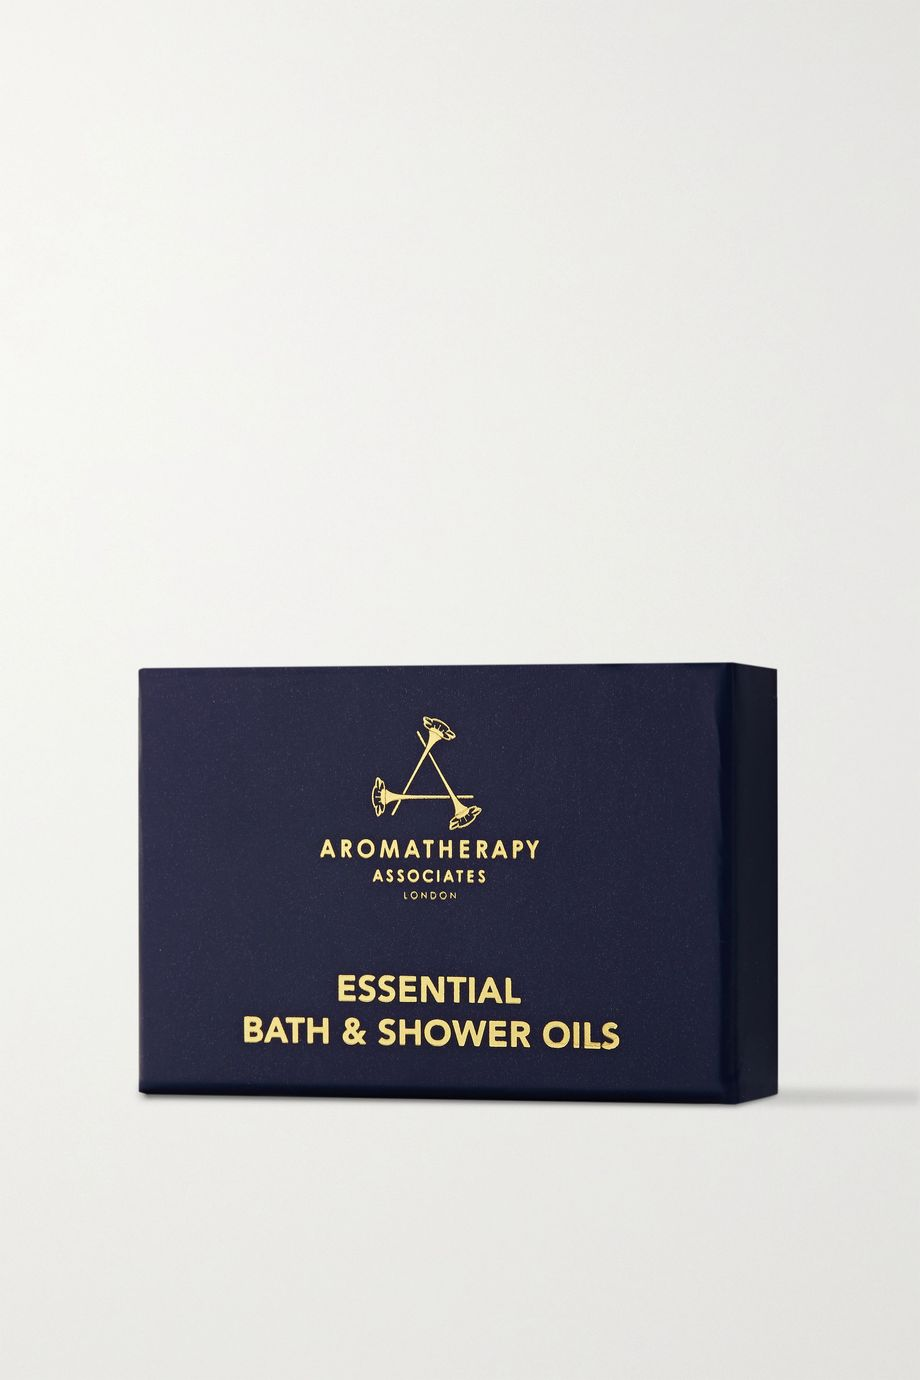 Aromatherapy Associates Essential Bath & Shower Oils, 3 x 9 ml – Set aus drei Badeölen